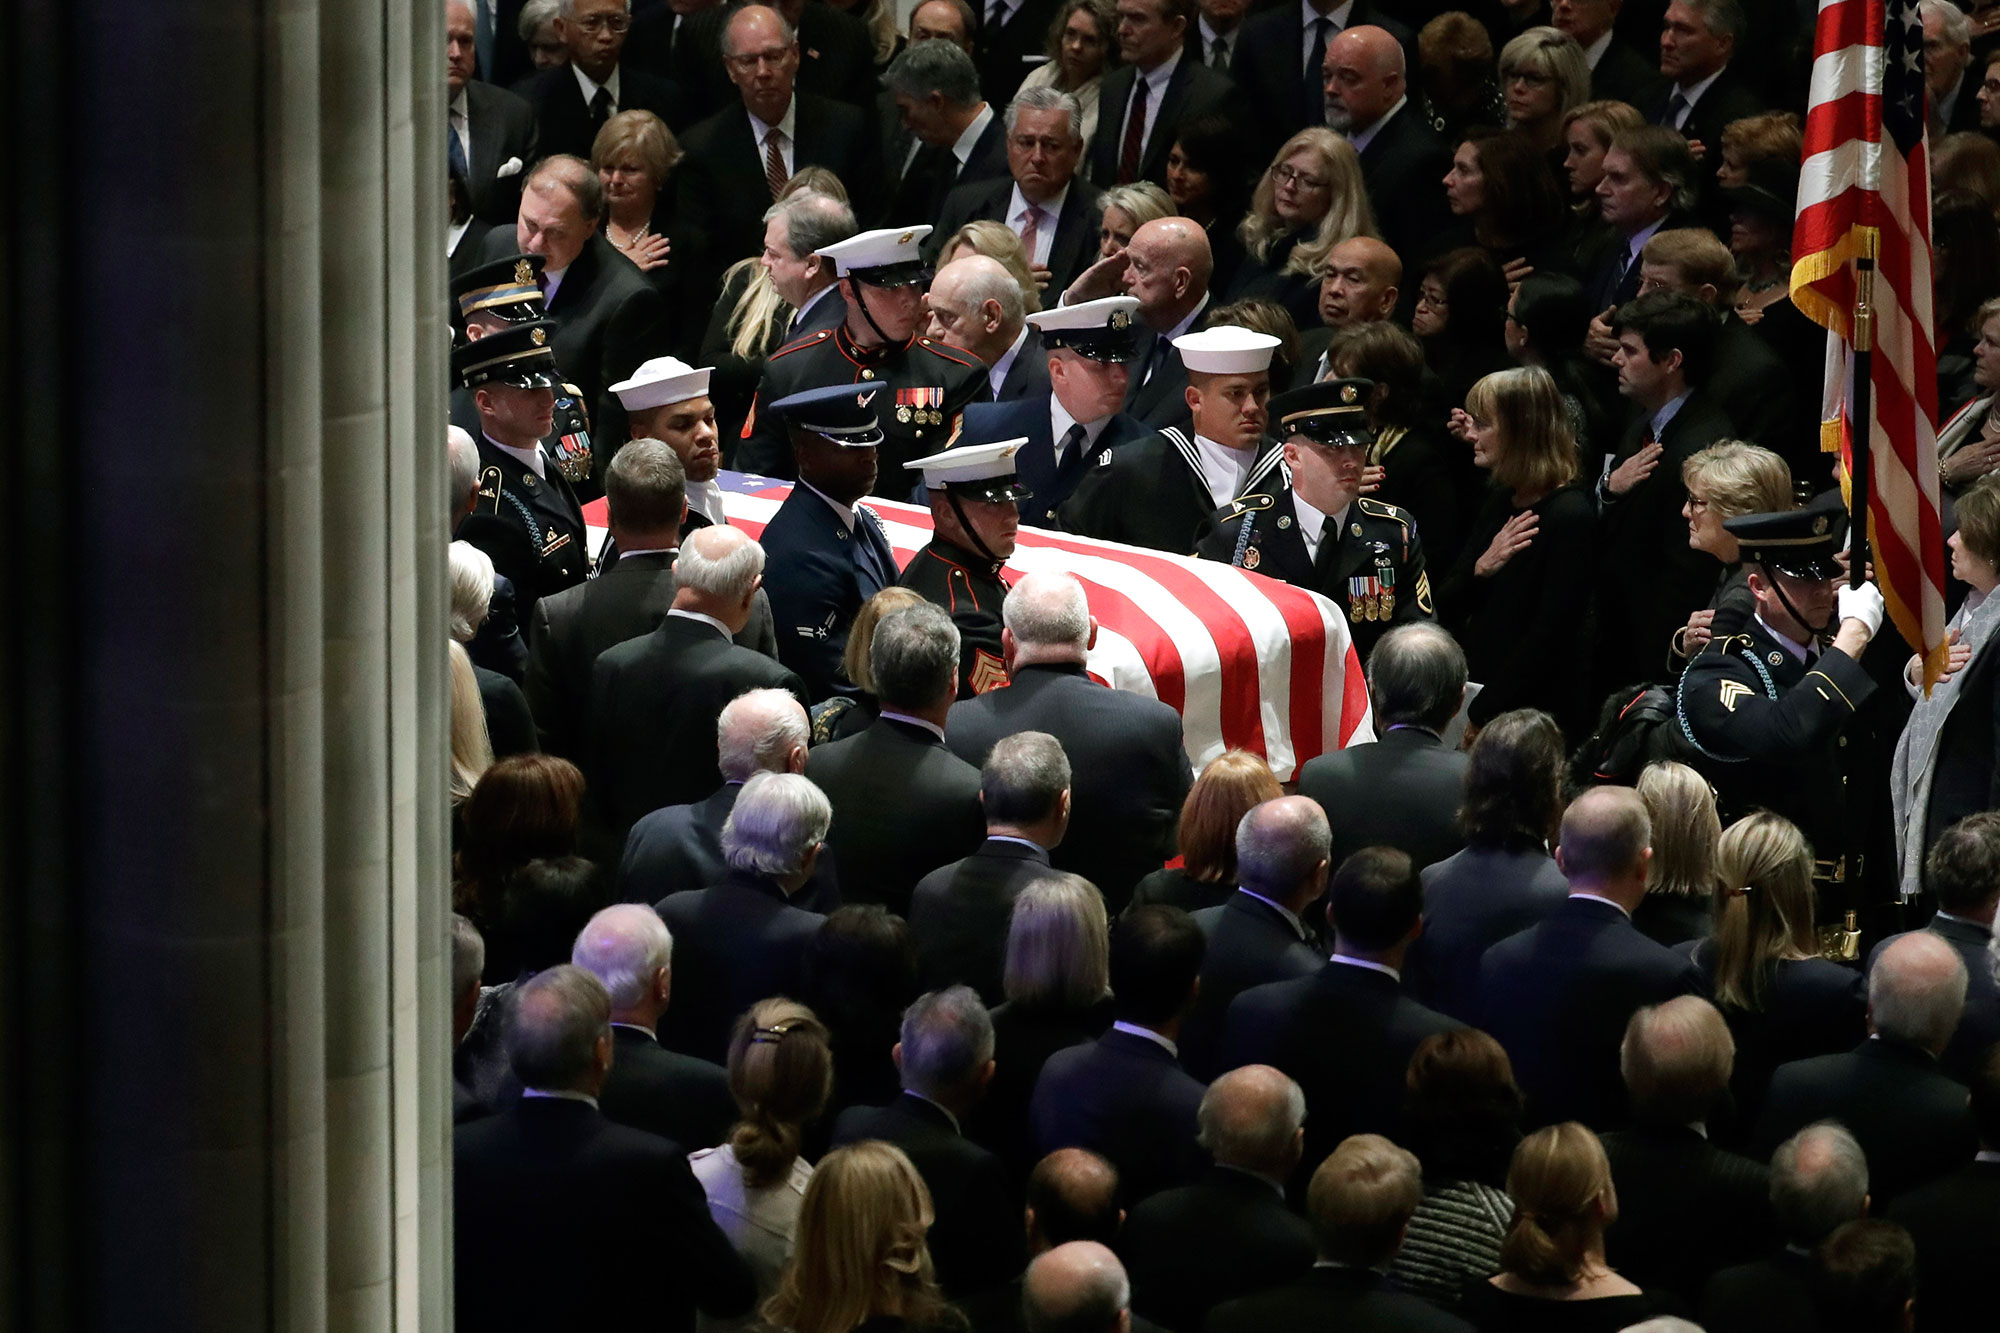 "<div class=""meta image-caption""><div class=""origin-logo origin-image none""><span>none</span></div><span class=""caption-text"">The flag-draped casket of former President George H.W. Bush is carried by a military honor guard. (Evan Vucci/AP Photo)</span></div>"